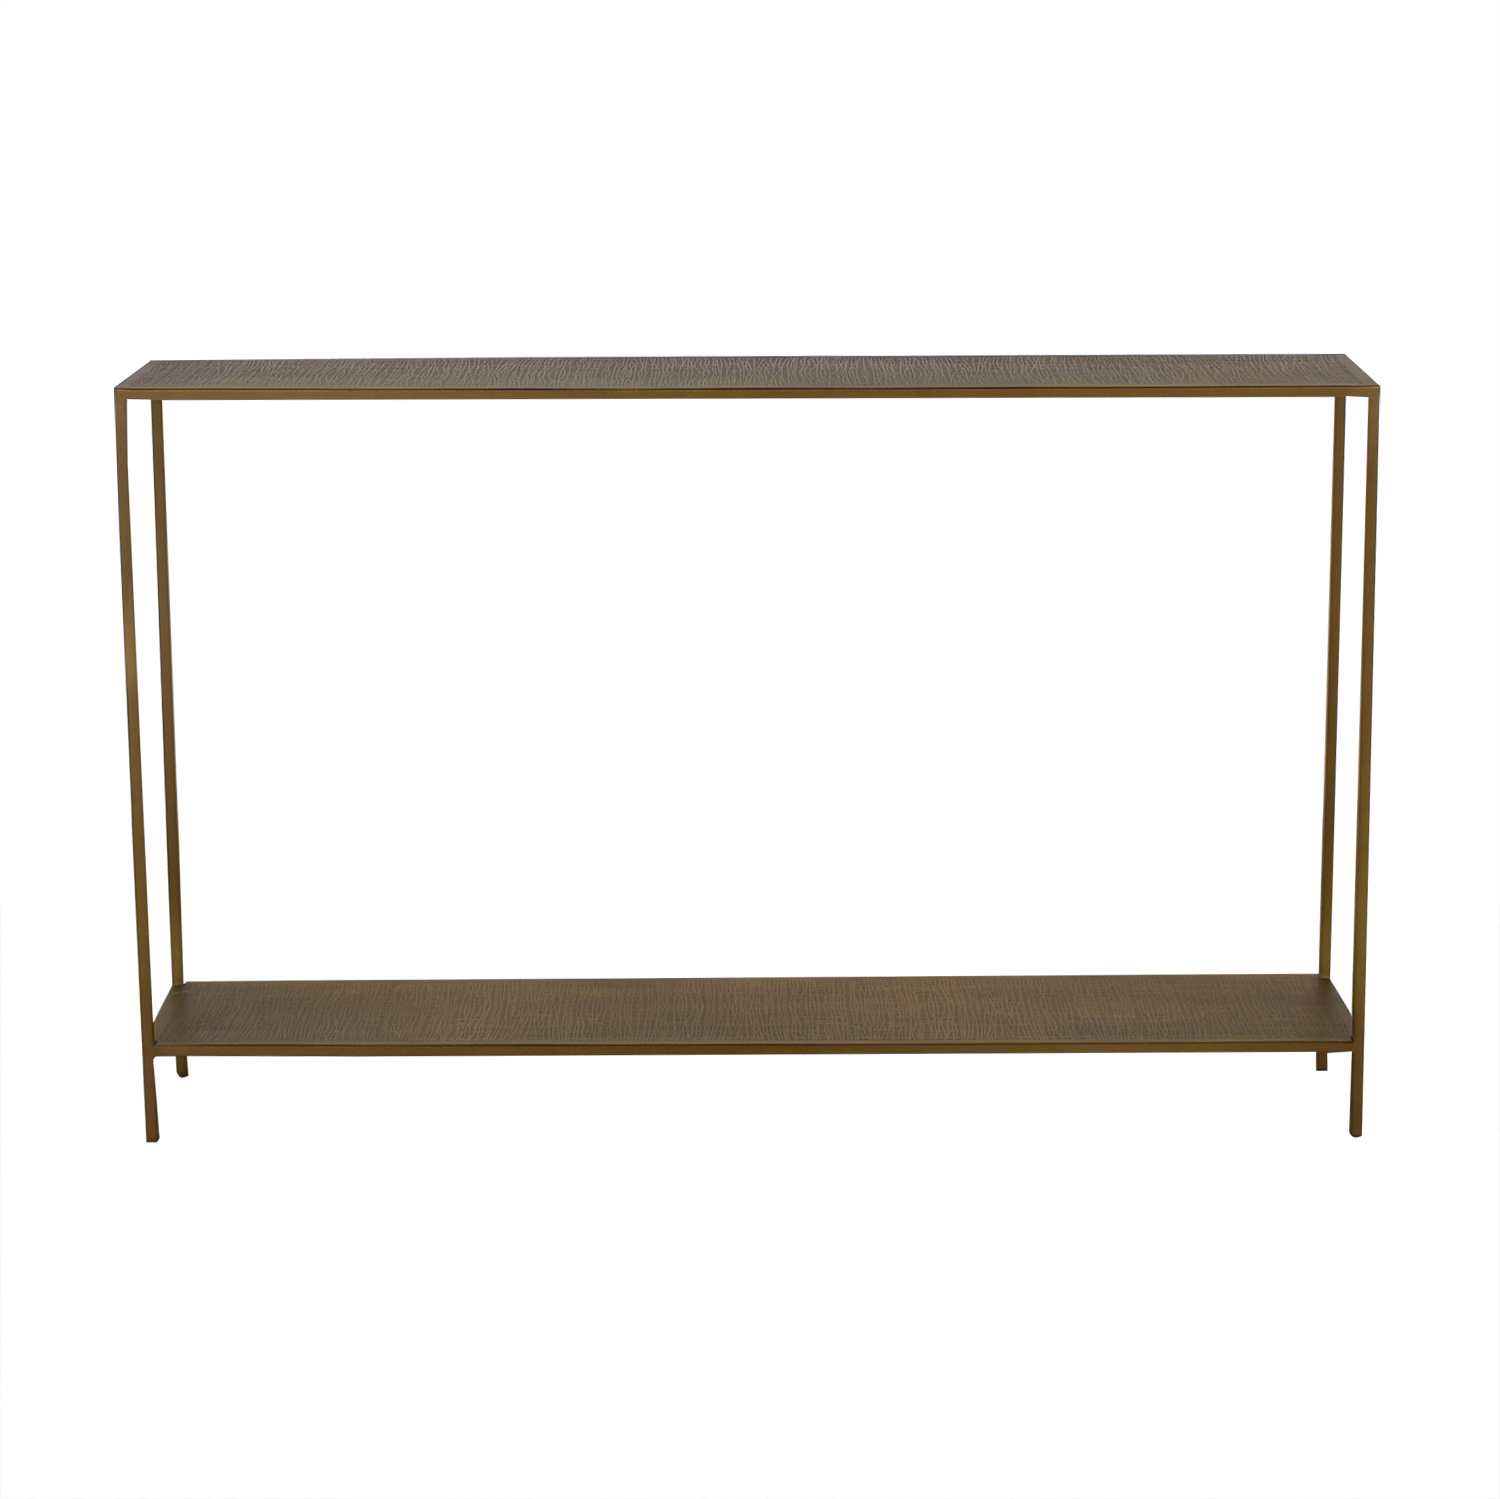 Crate & Barrel Crate & Barrel Jacque Console Table Coffee Tables